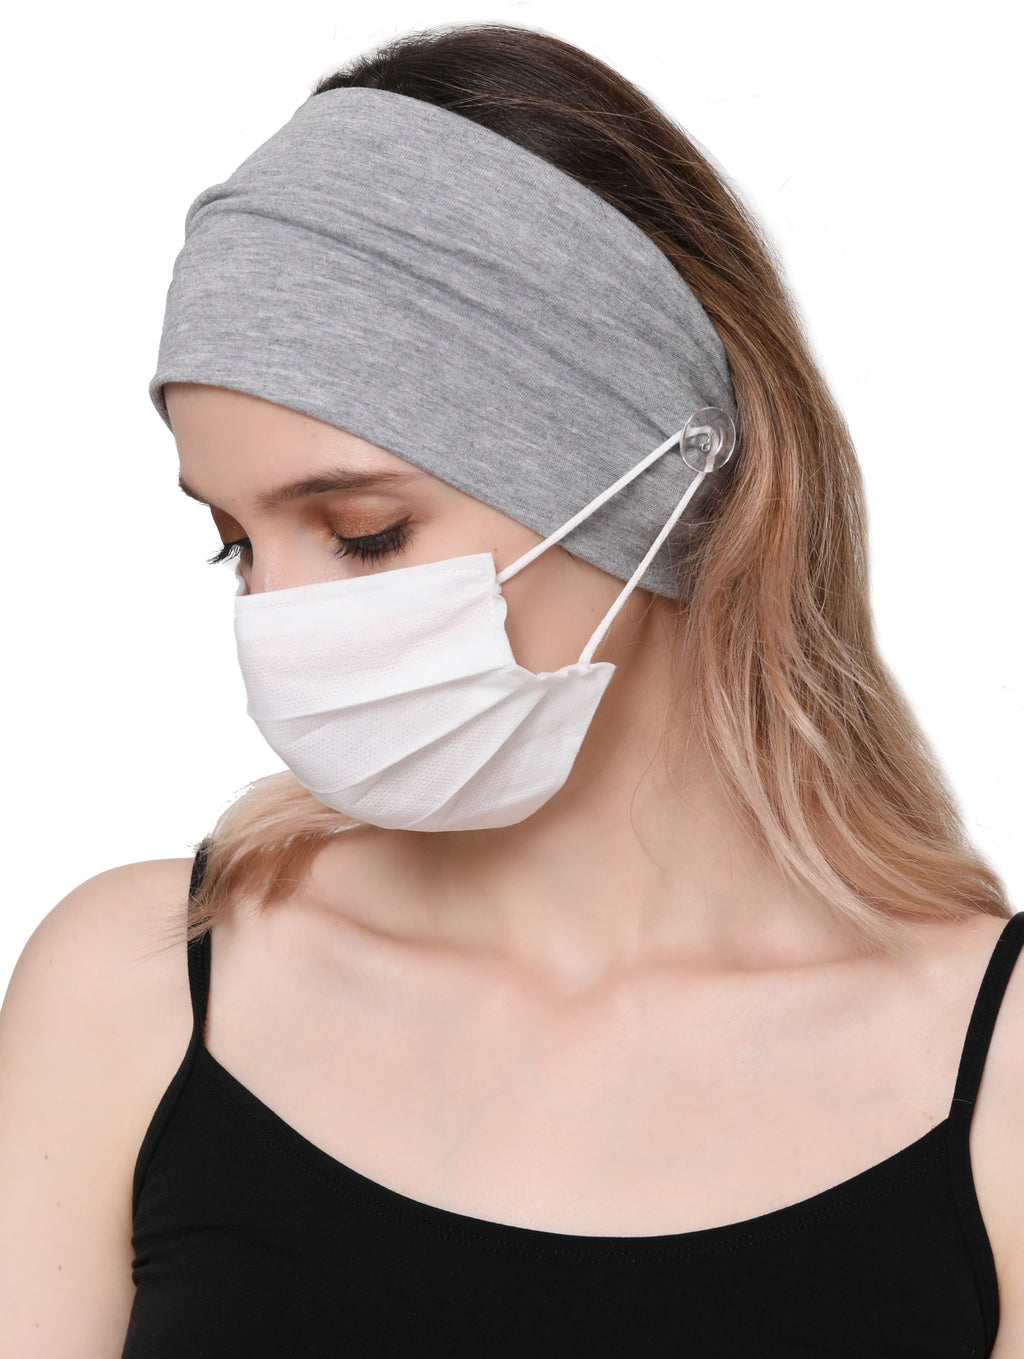 Clear Button Plain Headband for Mask - Grey Melange